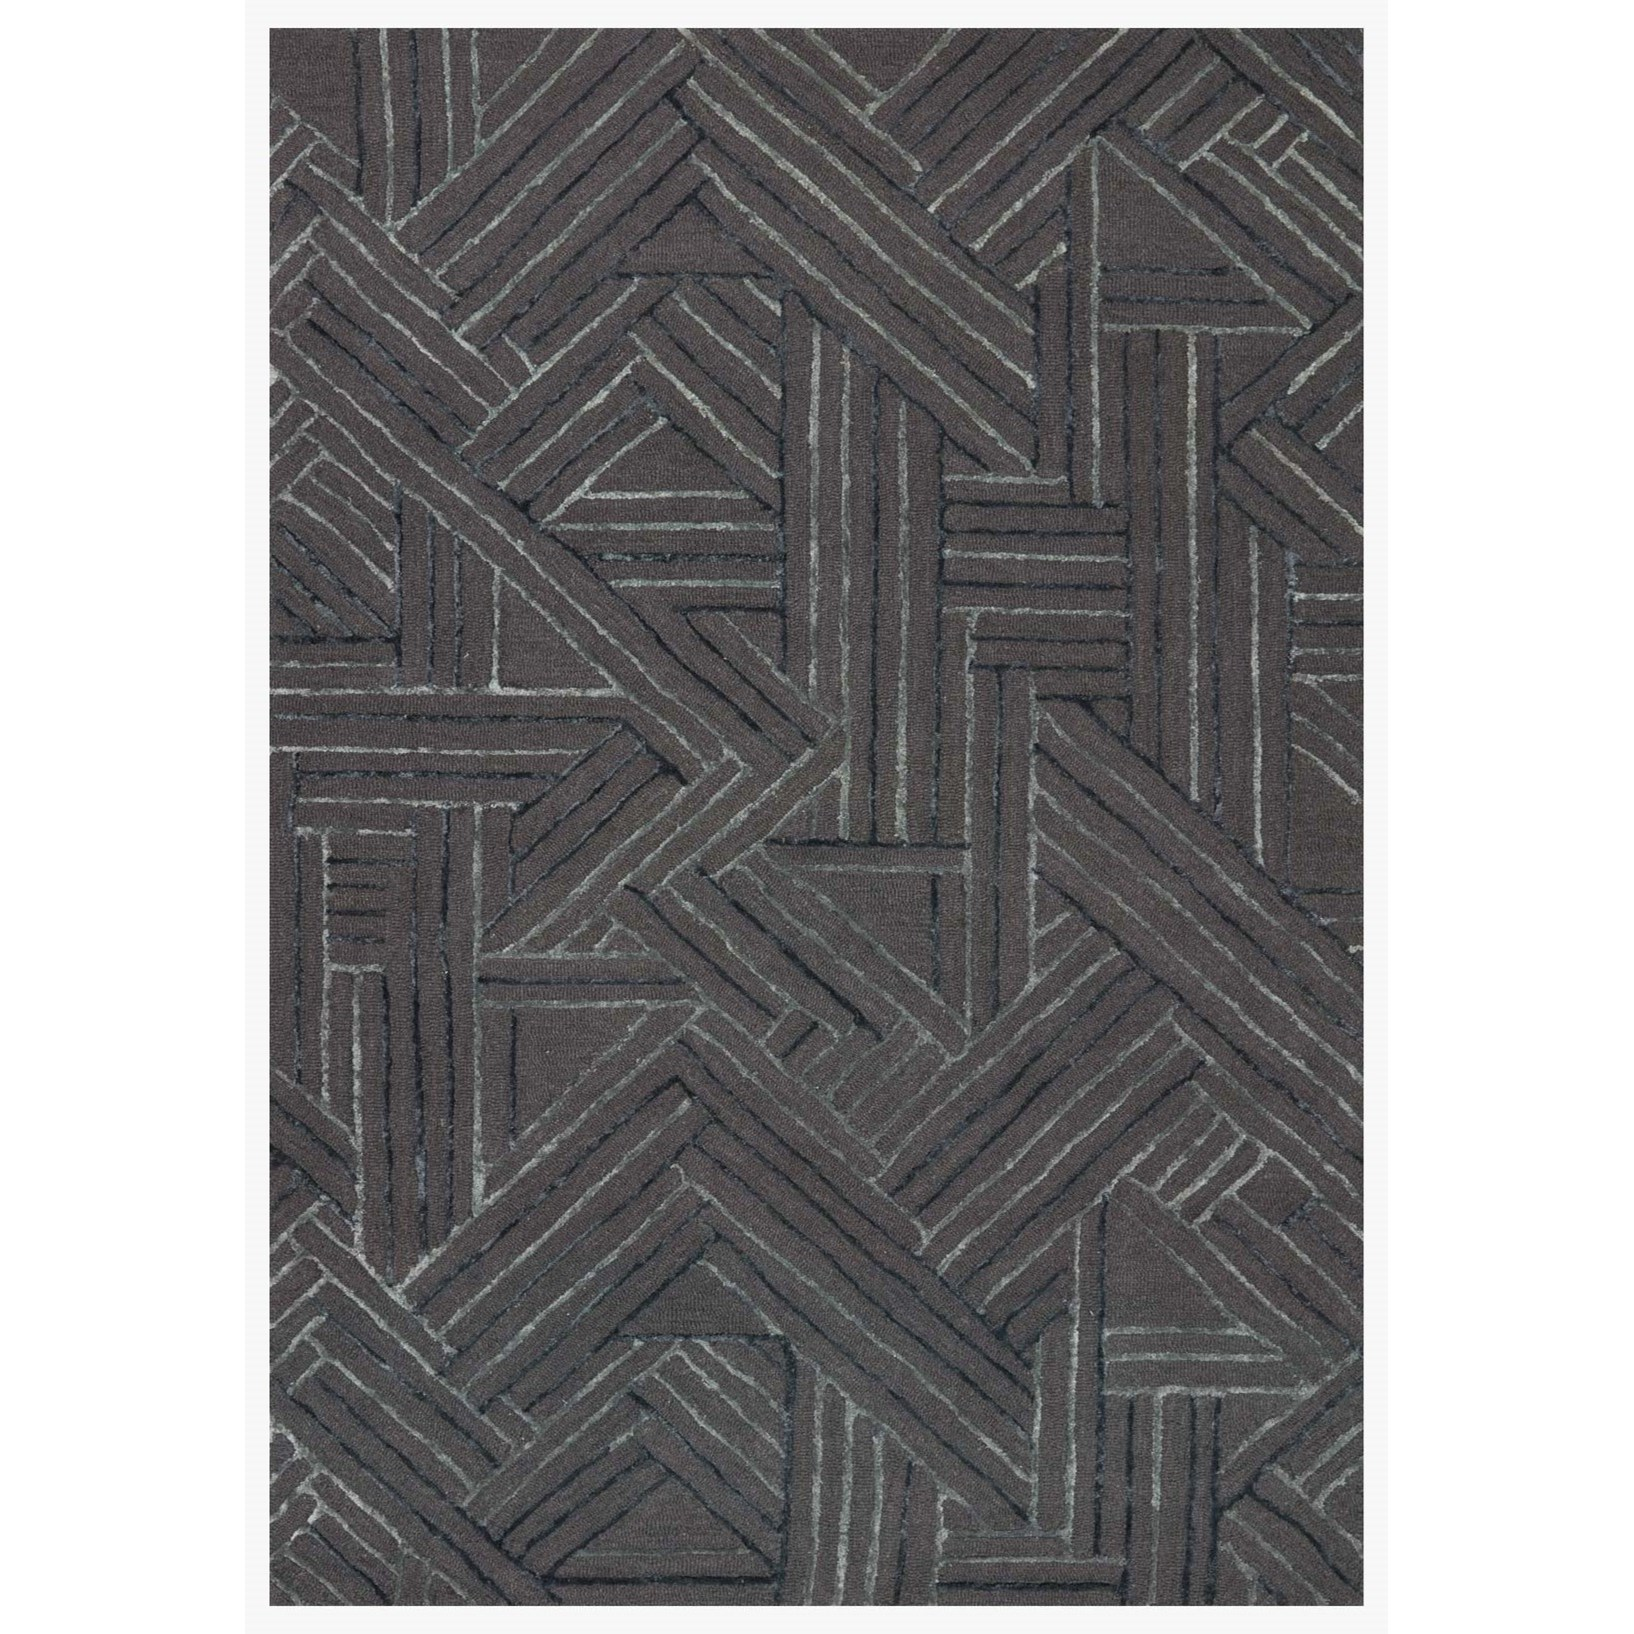 """Verve 18"""" x 18""""  Graphite / Ocean Rug by Loloi Rugs at Virginia Furniture Market"""